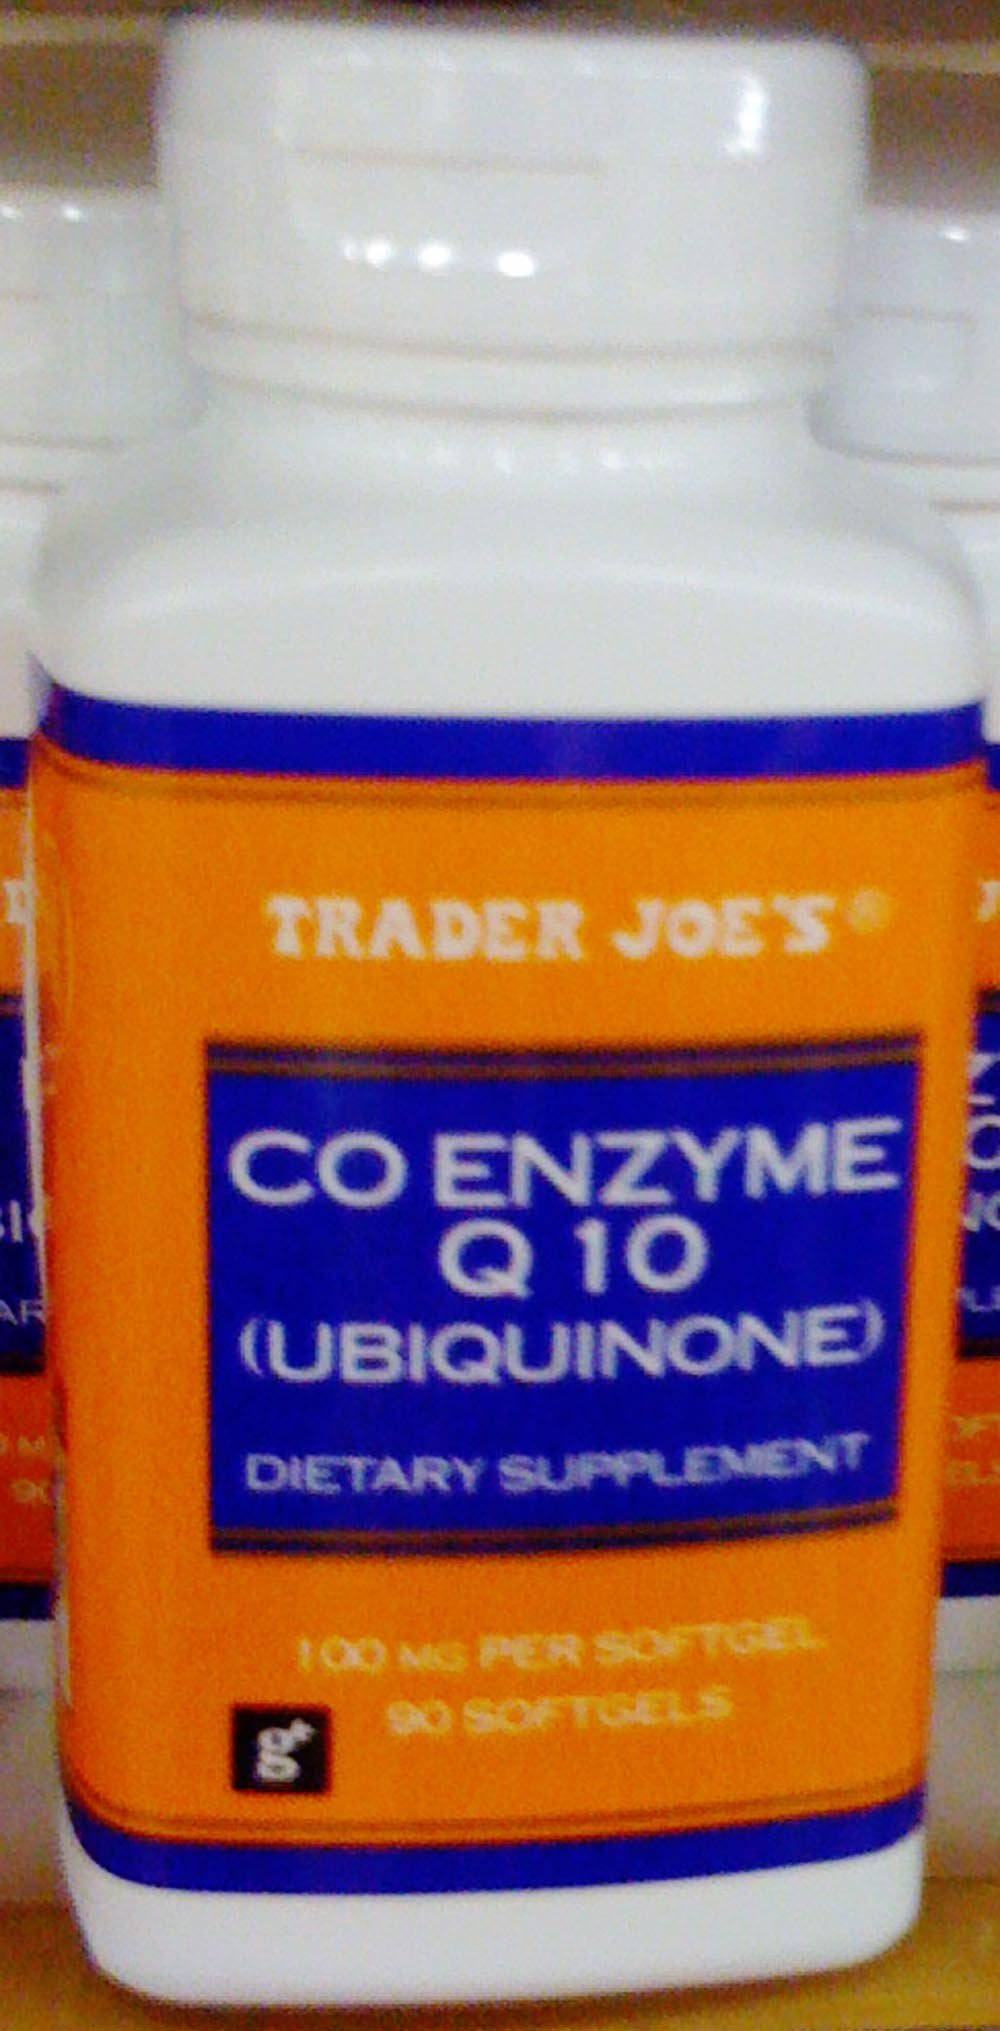 Amazon.com: Trader Joes Co Enzyme Q 10 (ubiquinone), 100mg, 90 Softgels: Health & Personal Care